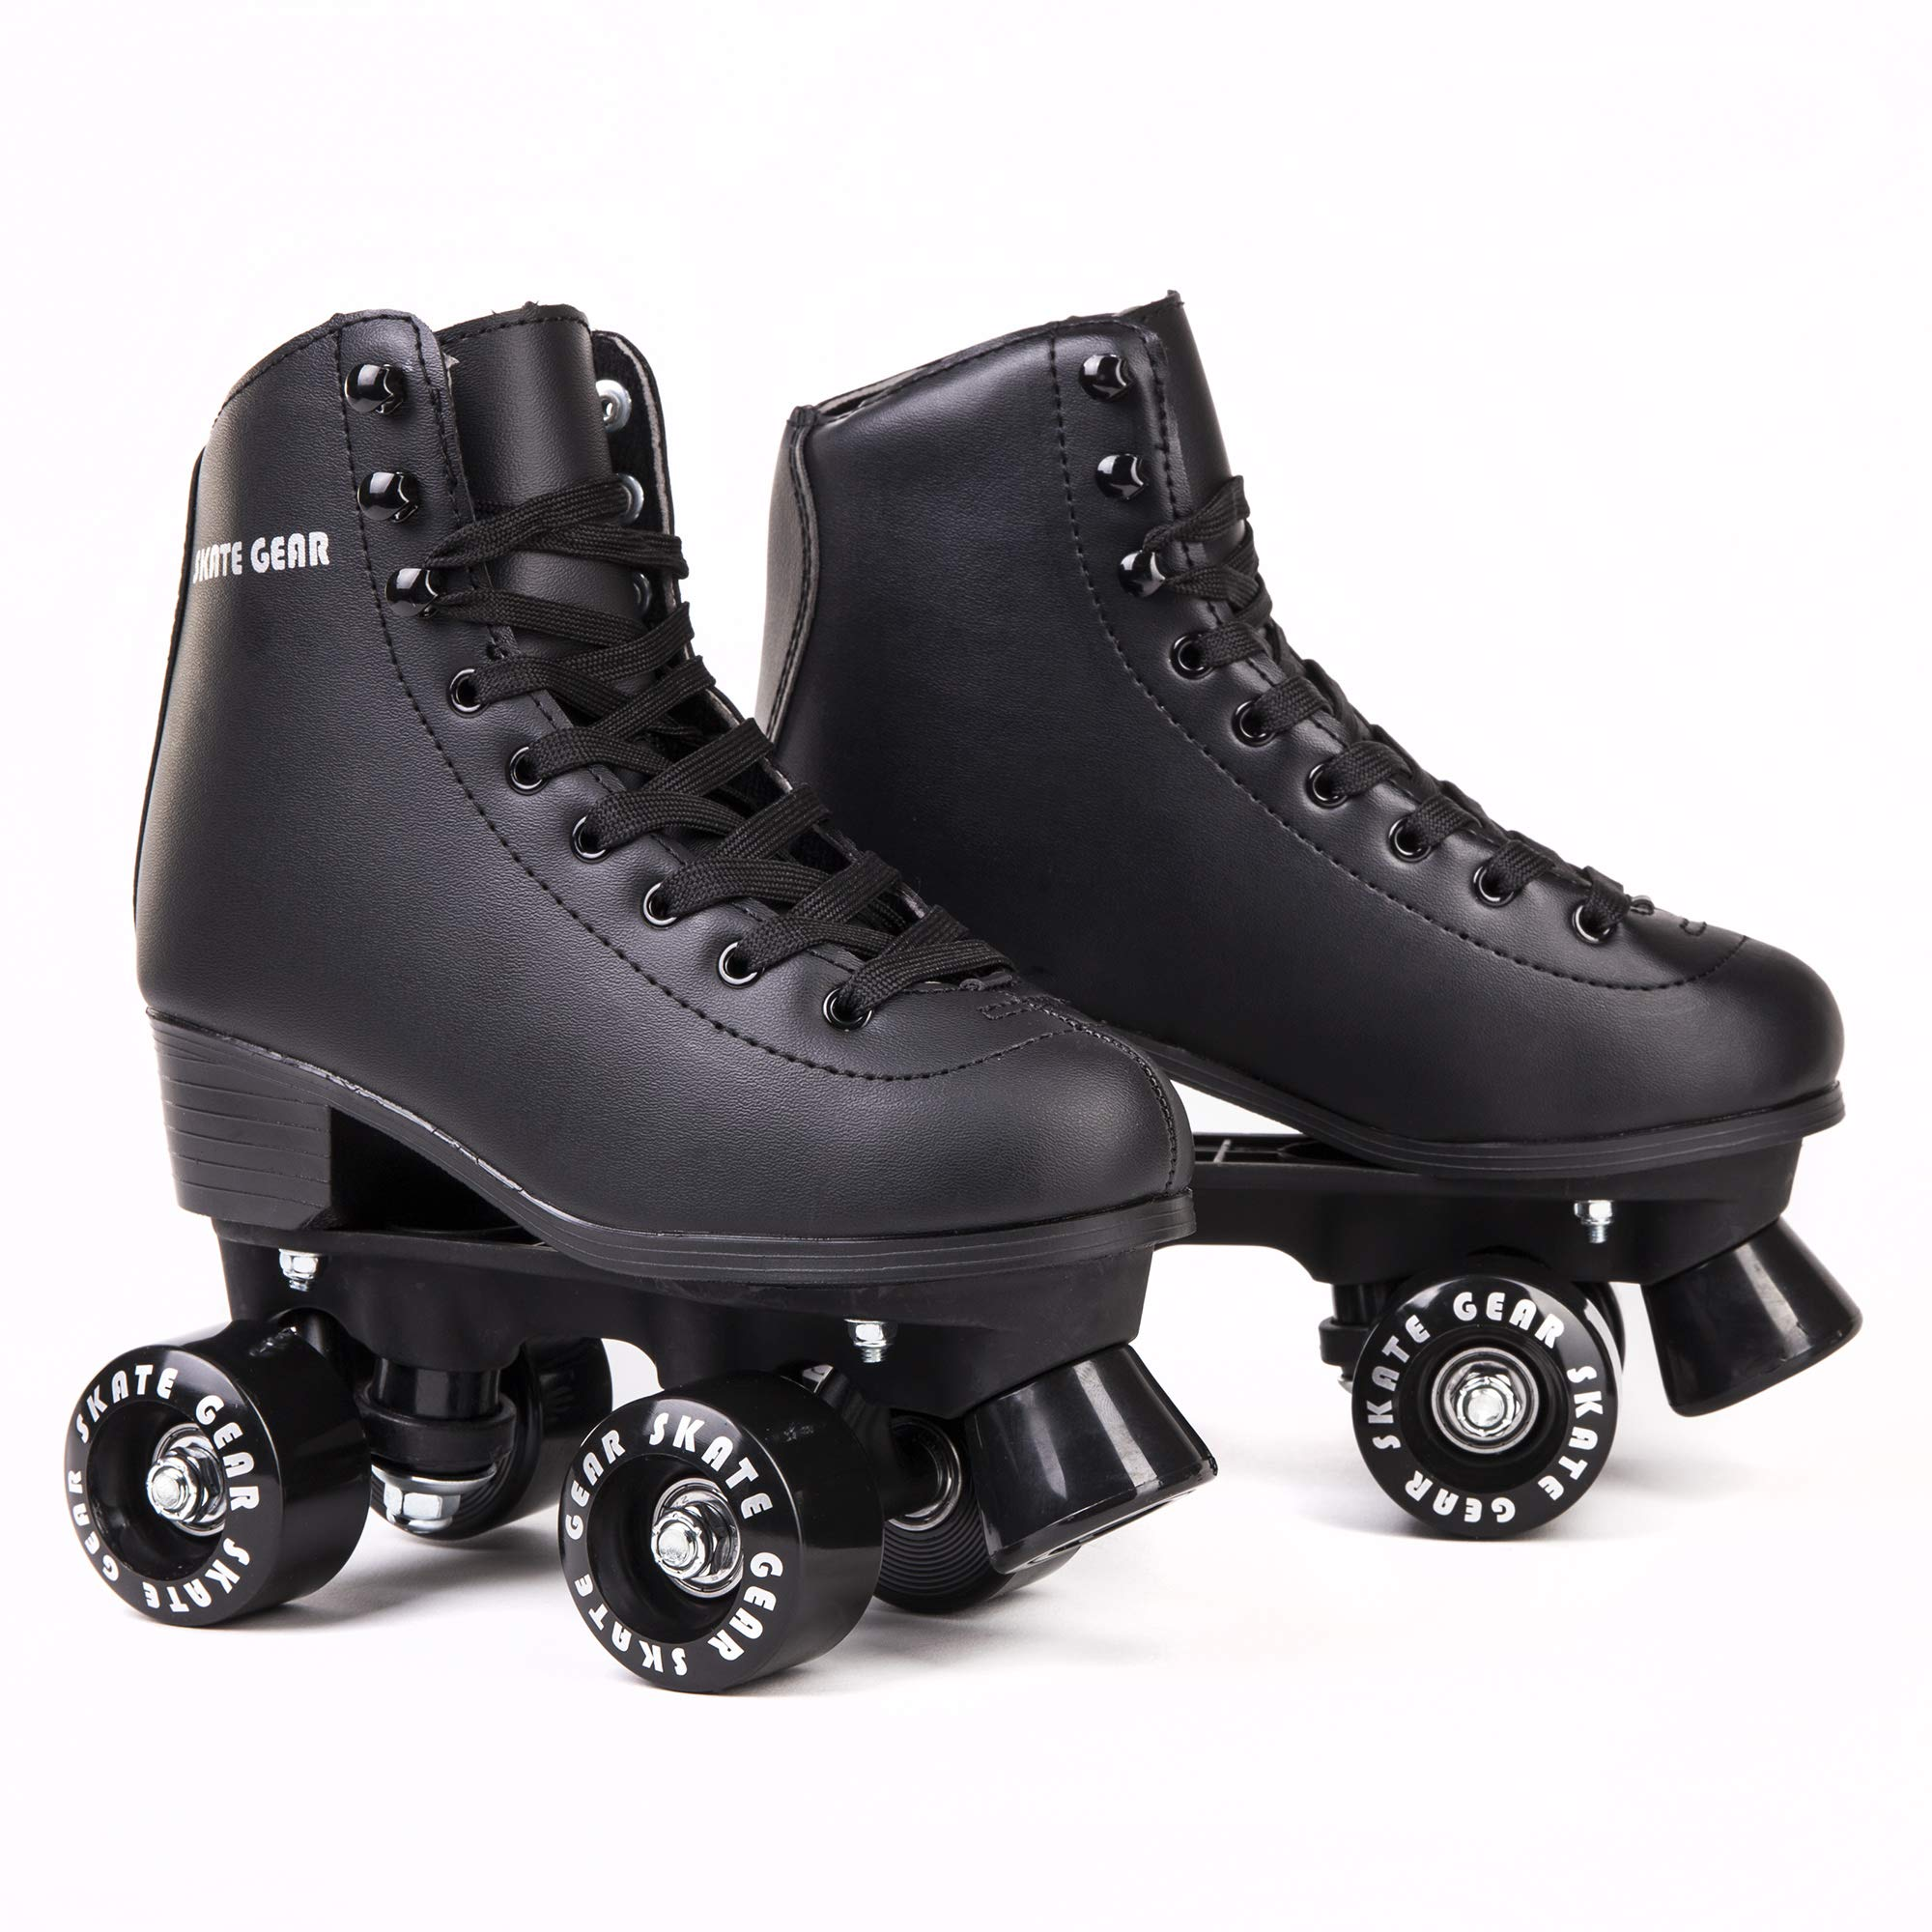 Cal 7 Roller Skates for Indoor & Outdoor Skating, Faux Leather Boot with Quad Design, Ankle Support Frame, Adults & Kids (Black, Youth 1)